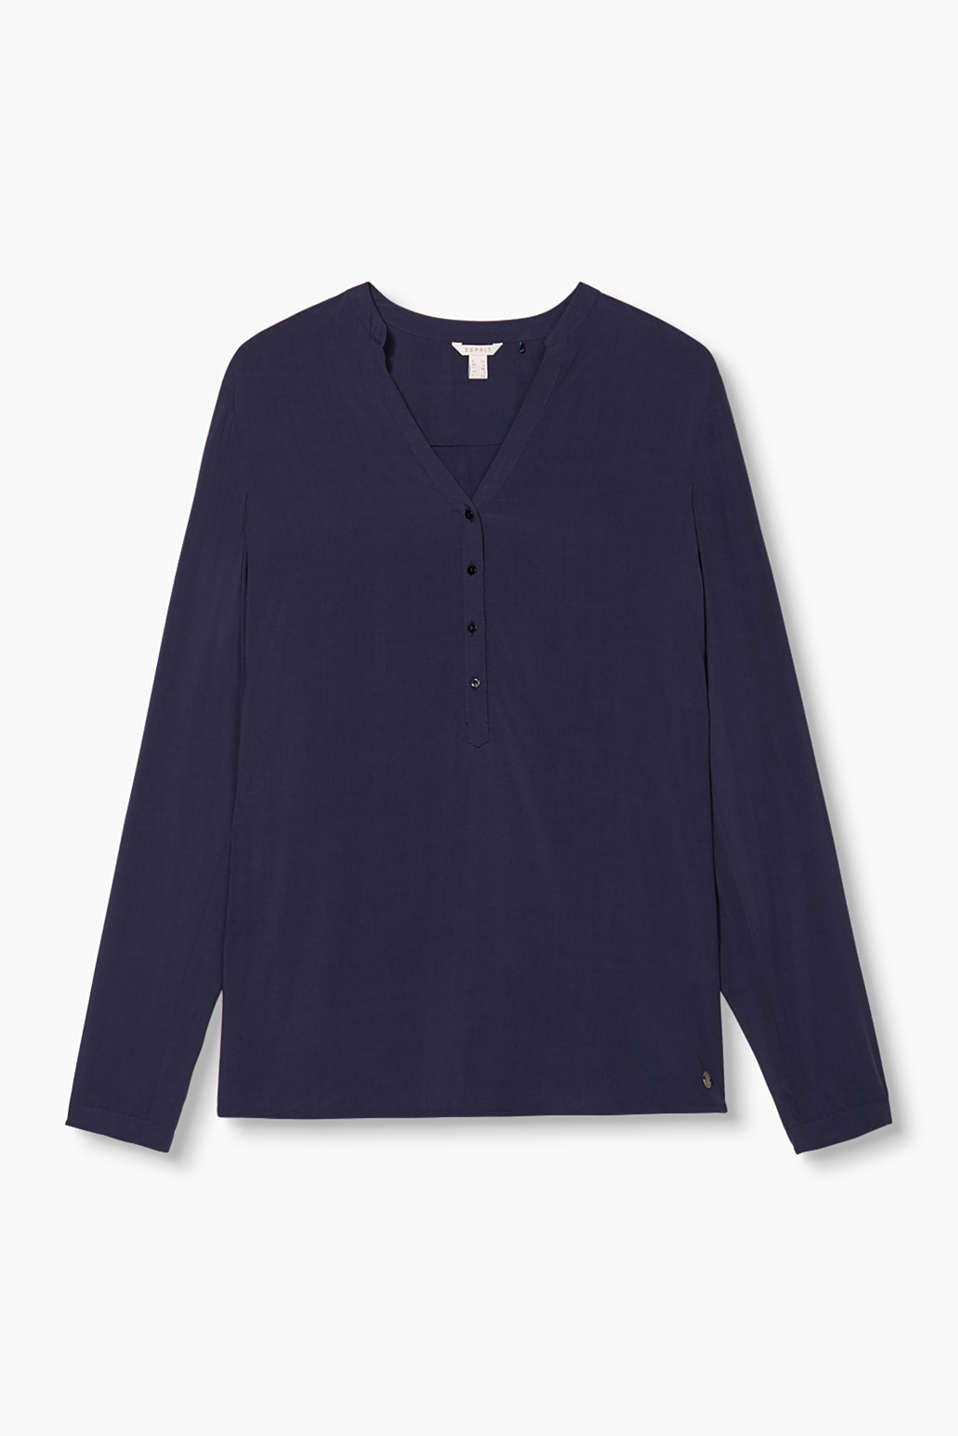 This flowing basic blouse with adjustable sleeves and a feminine cup neckline is the perfect essential!